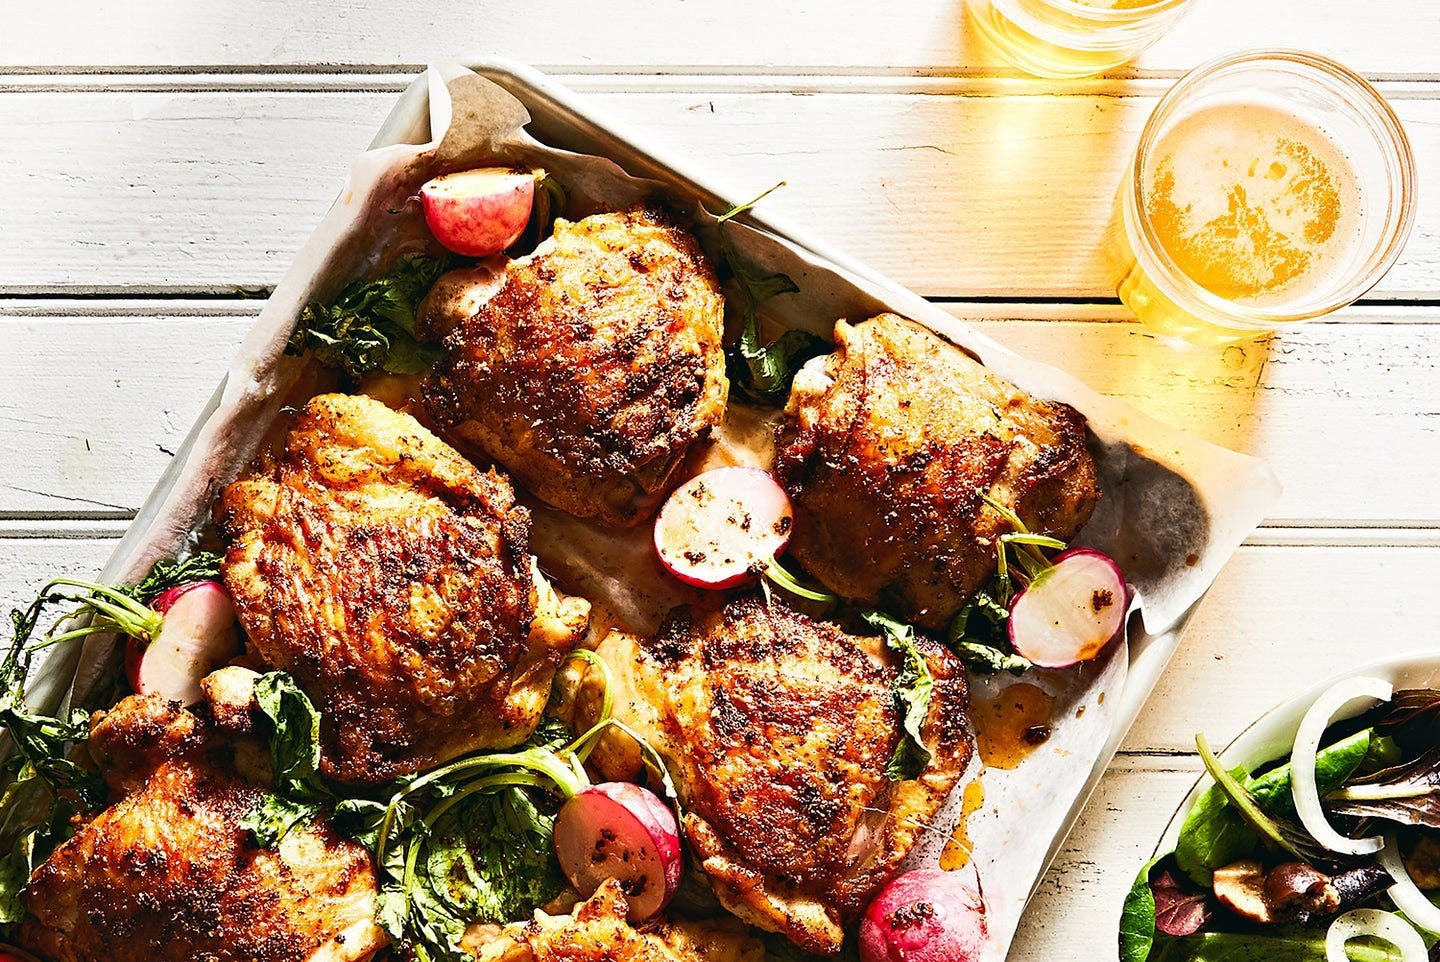 Radishes roasted on the same baking sheet as the chicken are an excellent partner for the juicy spiced meat.